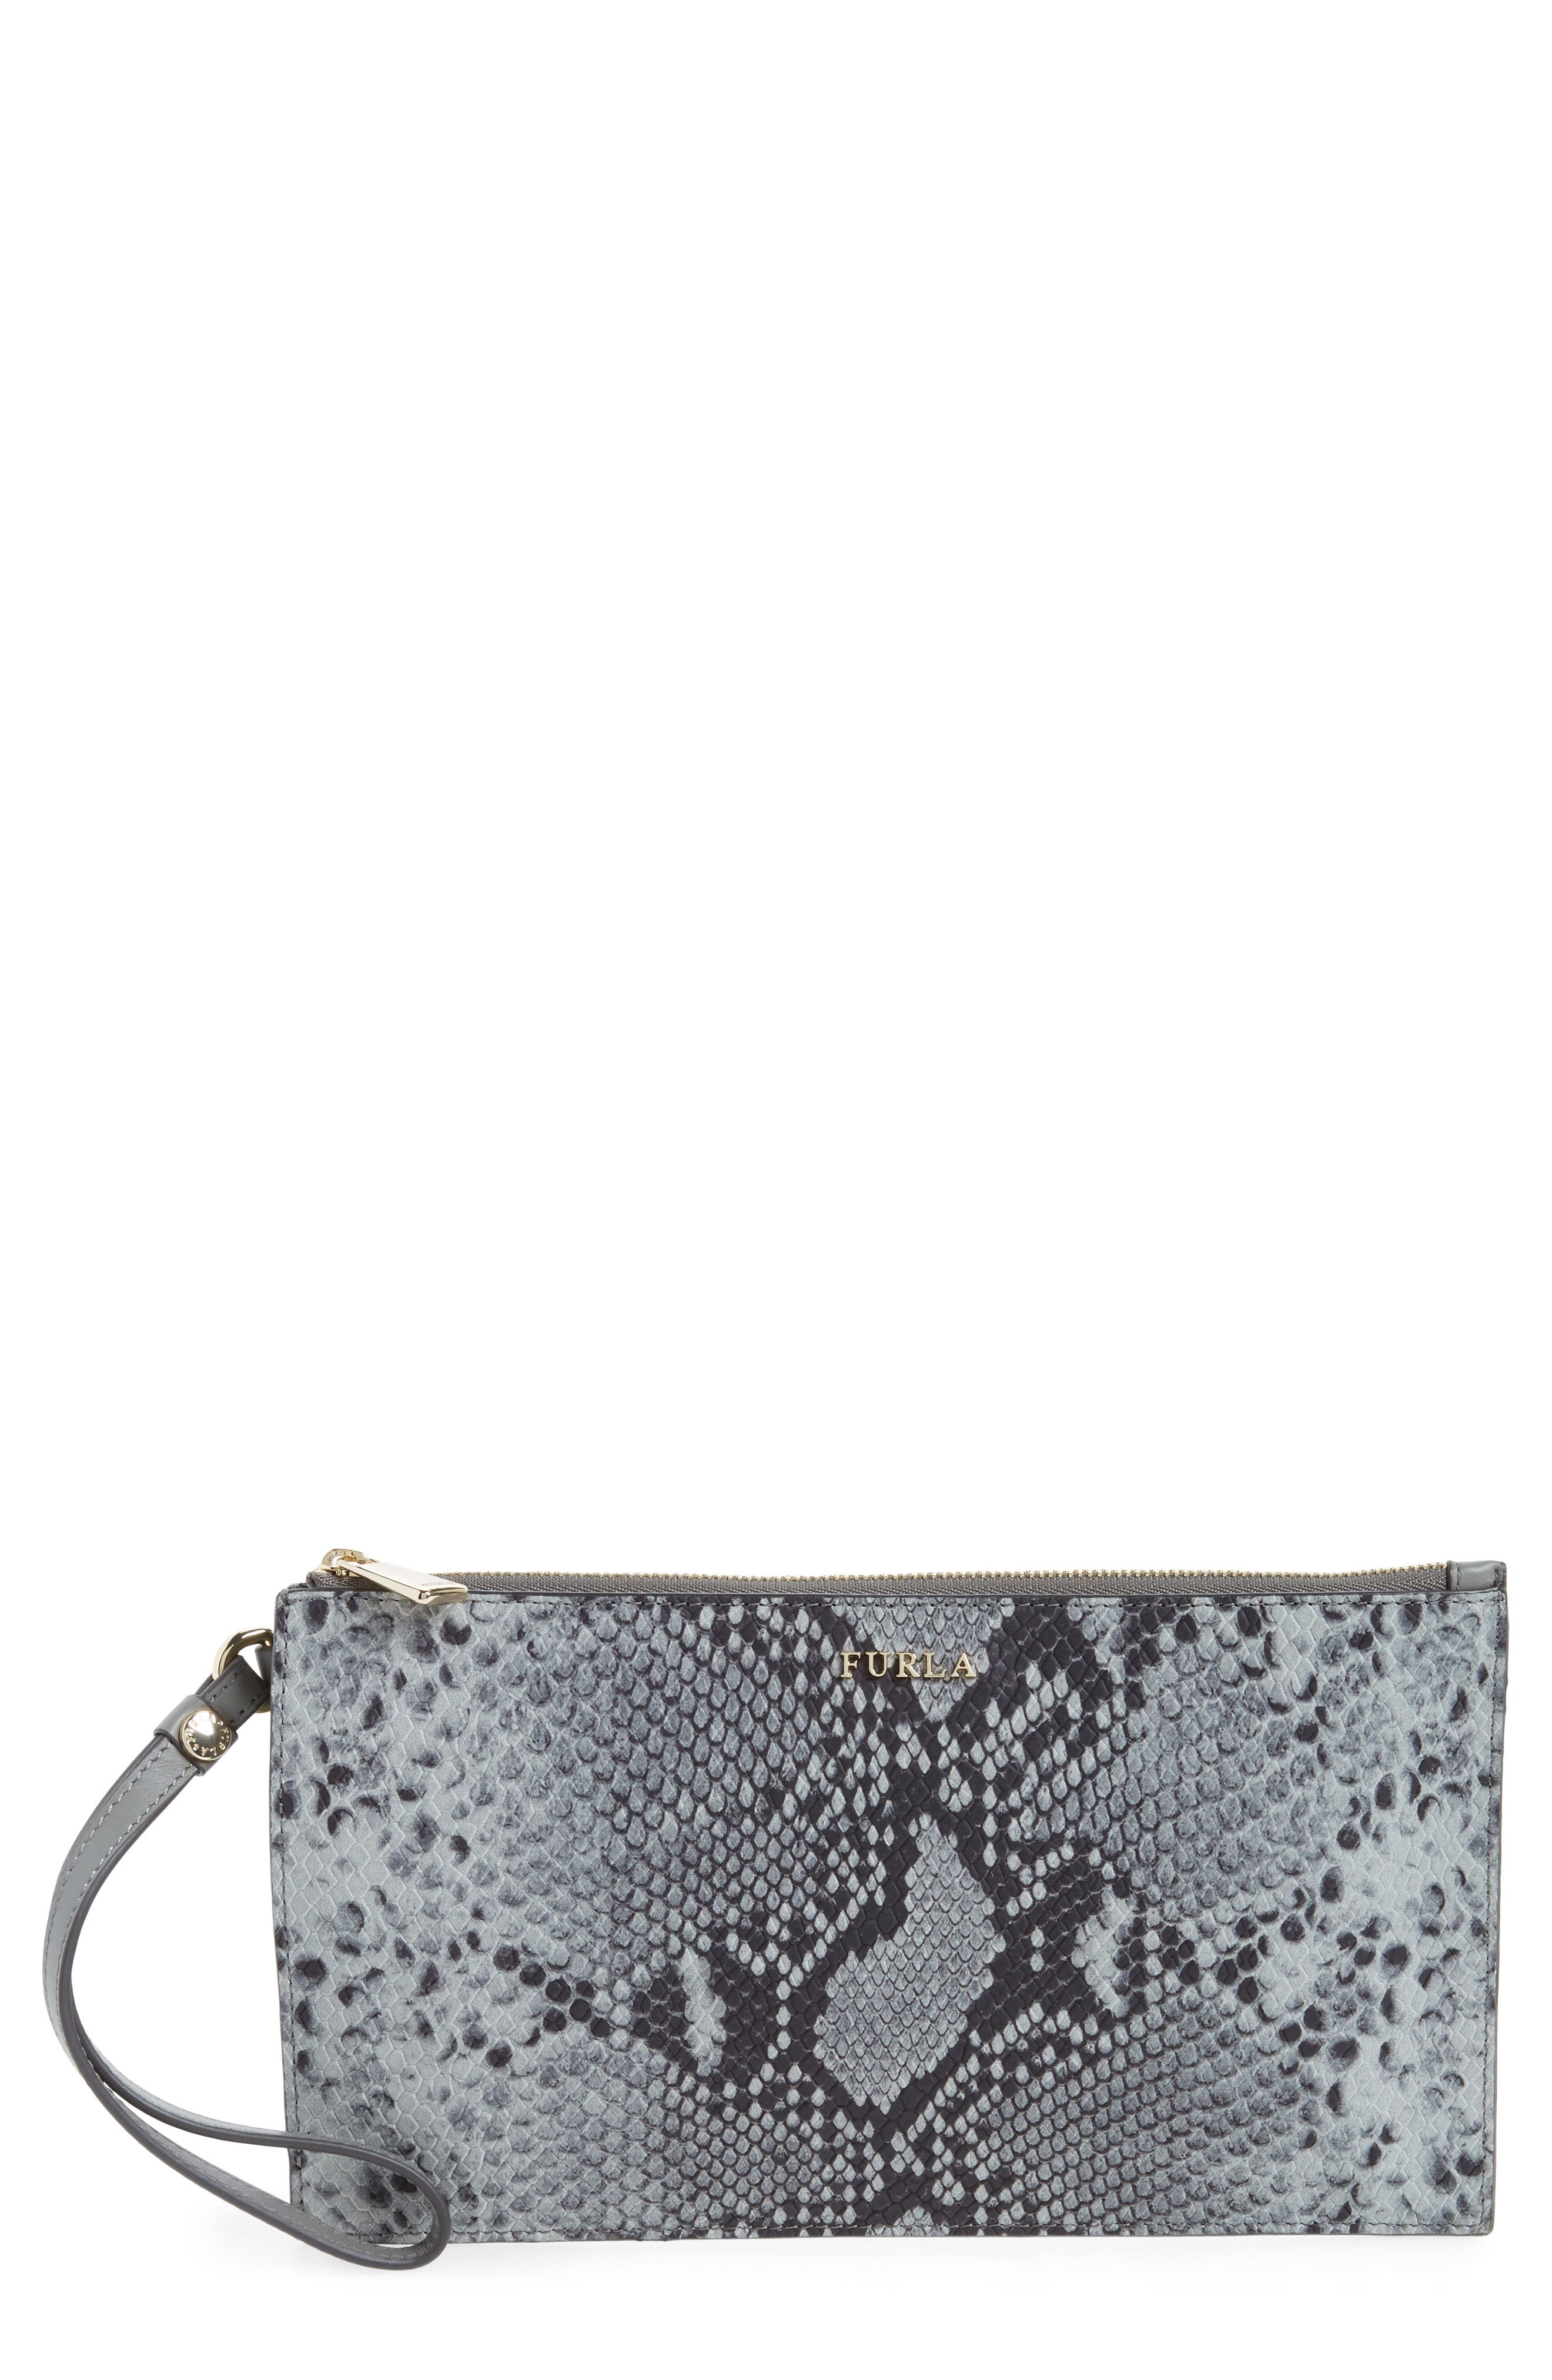 Furla Babylon Python Embossed Leather Wristlet Pouch